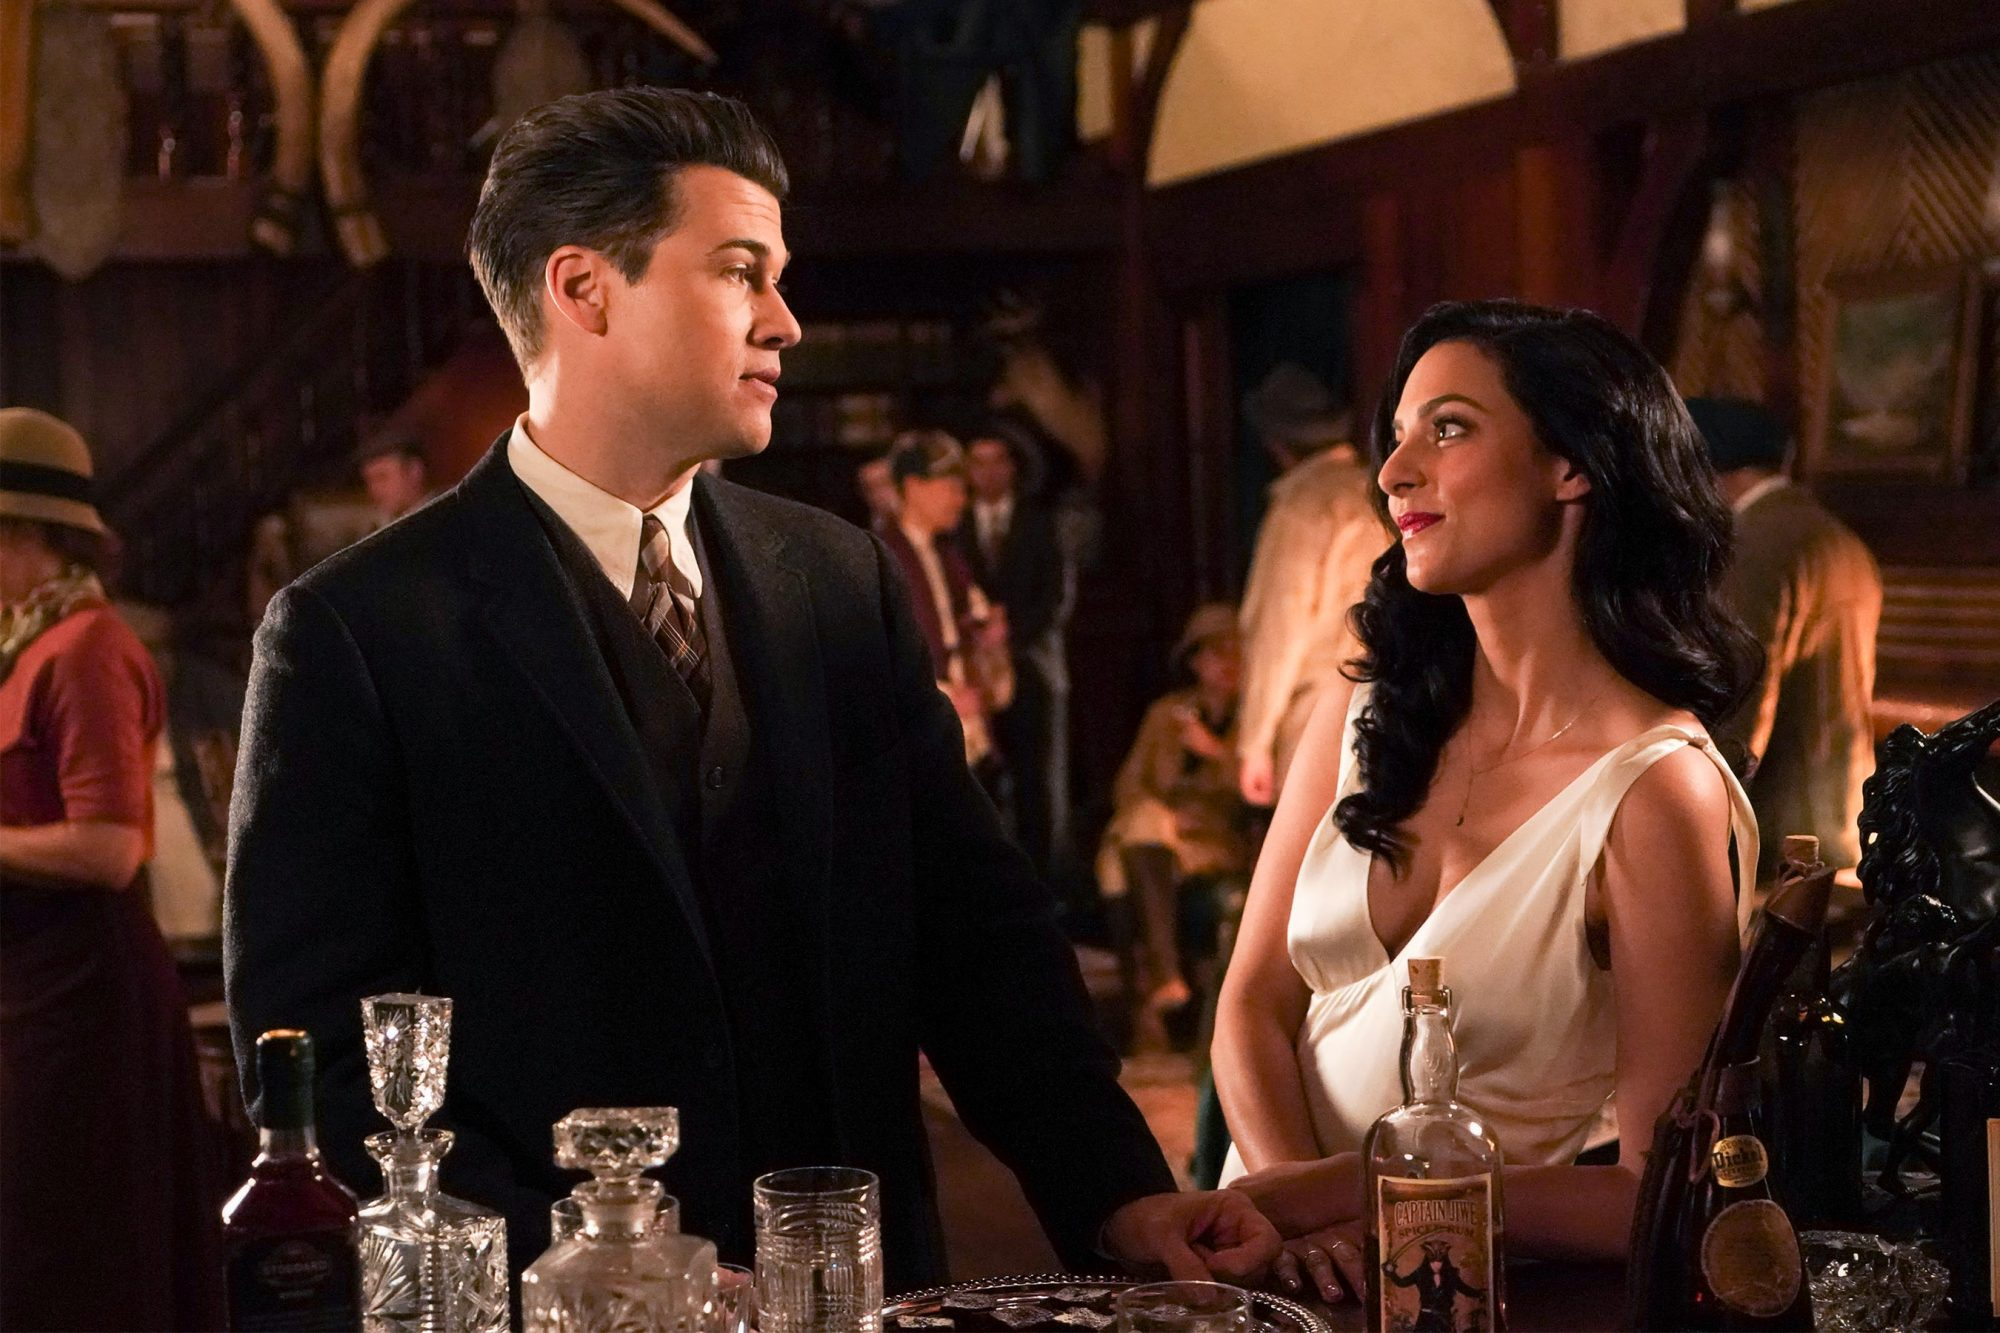 """DC's Legends of Tomorrow -- """"Egg MacGuffin"""" -- Image Number: LGN413b_0022b.jpg -- Pictured (L-R): Nick Zano as Nate Heywood/Steel and Tala Ashe as Zari -- Photo: Shane Harvey/The CW -- © 2019 The CW Network, LLC. All Rights Reserved."""